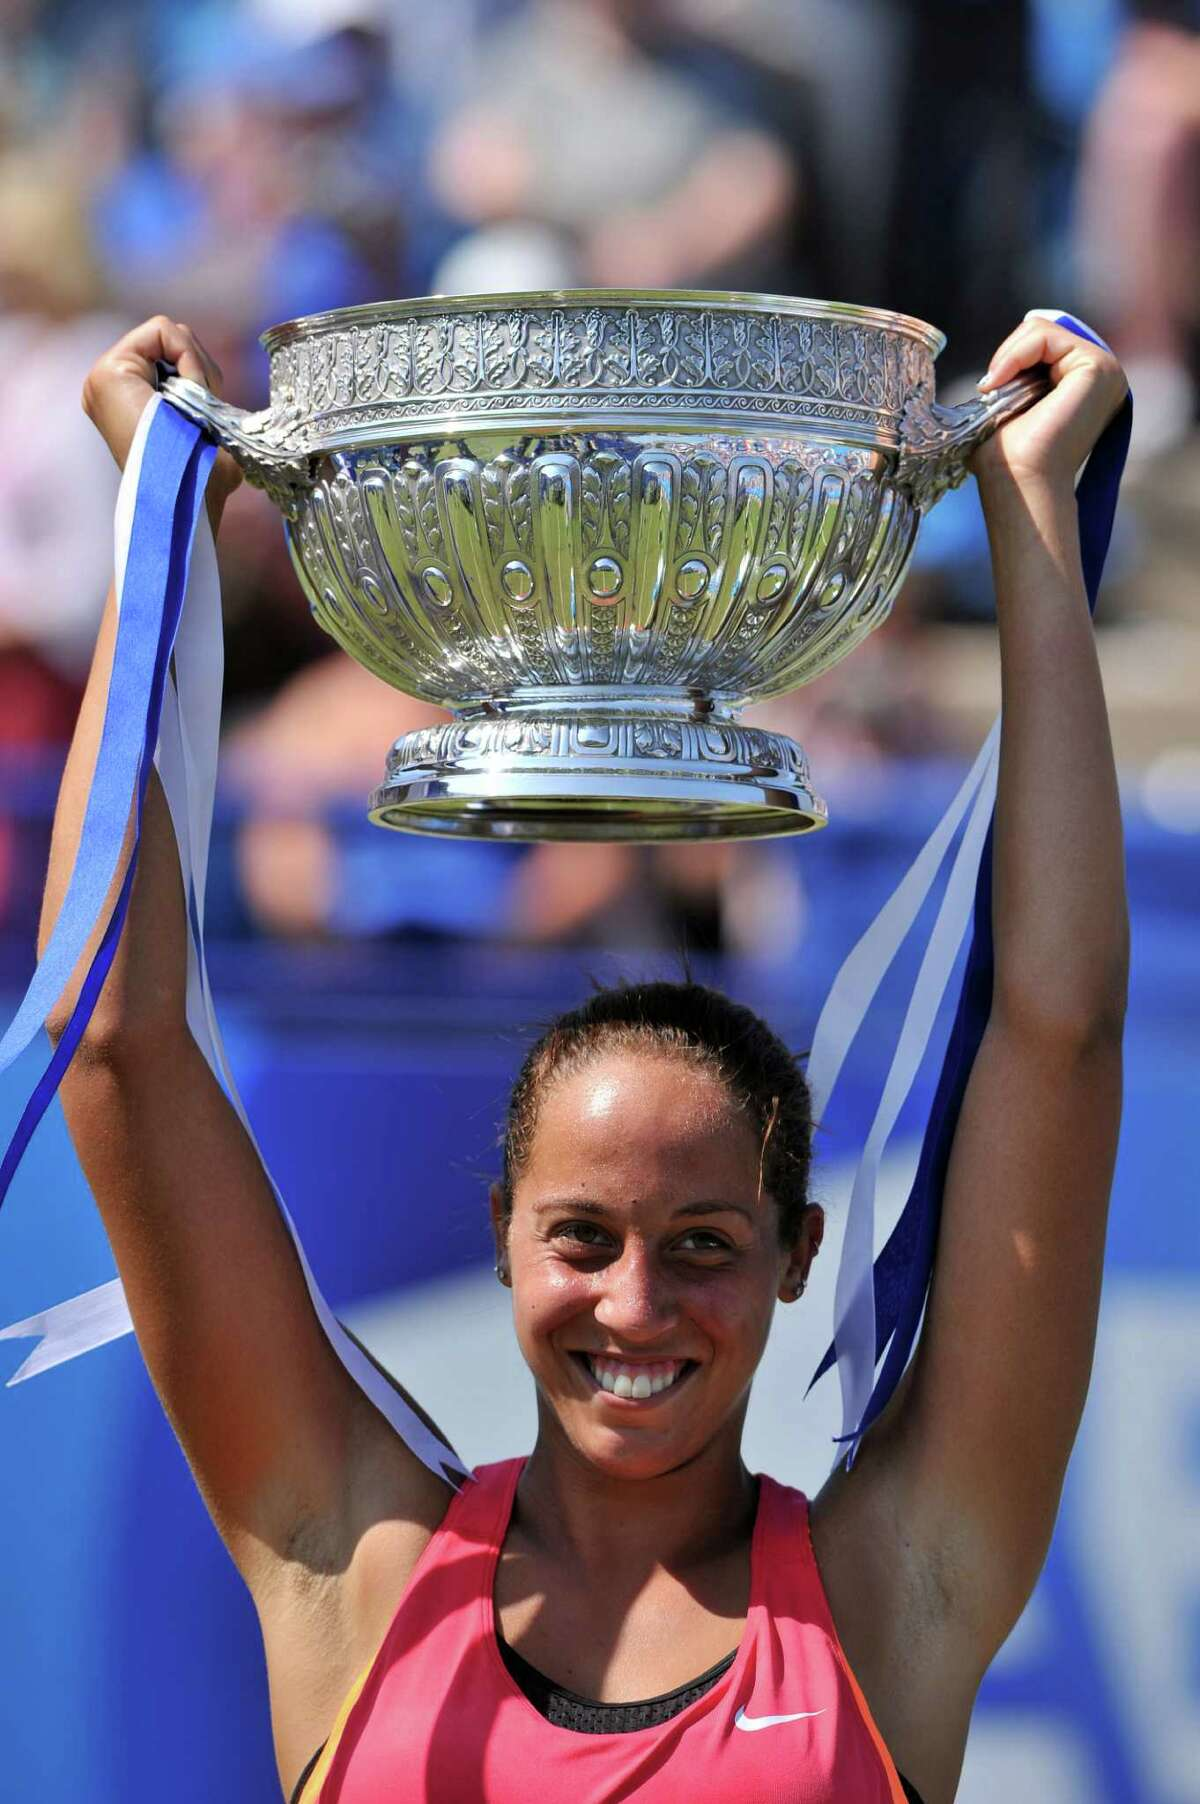 Madison Keys of the US celebrates with the trophy after winning the women's singles final match against Germany's Angelique Kerber on the eighth day of the Aegon International tennis tournament in Eastbourne, southern England on June 21, 2014. Keys won 6-3, 3-6, 7-5. AFP PHOTO / GLYN KIRKGLYN KIRK/AFP/Getty Images